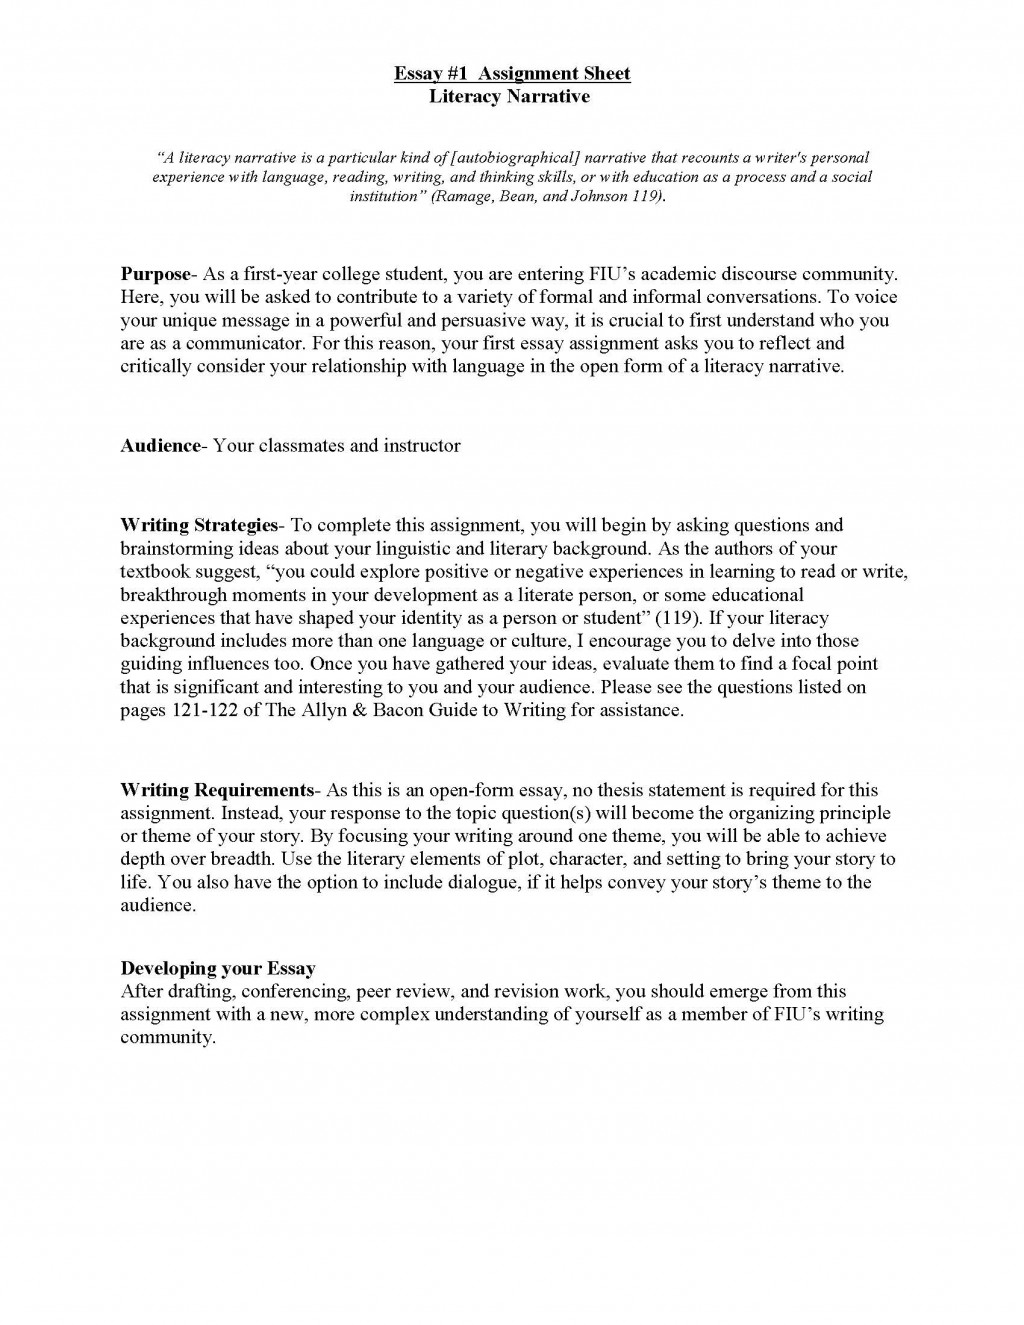 016 Personal Narrative Essay Example Literacy Unit Assignment Spring 2012 Page 1 Stirring Examples Free Topics For Grade 7 8th Large